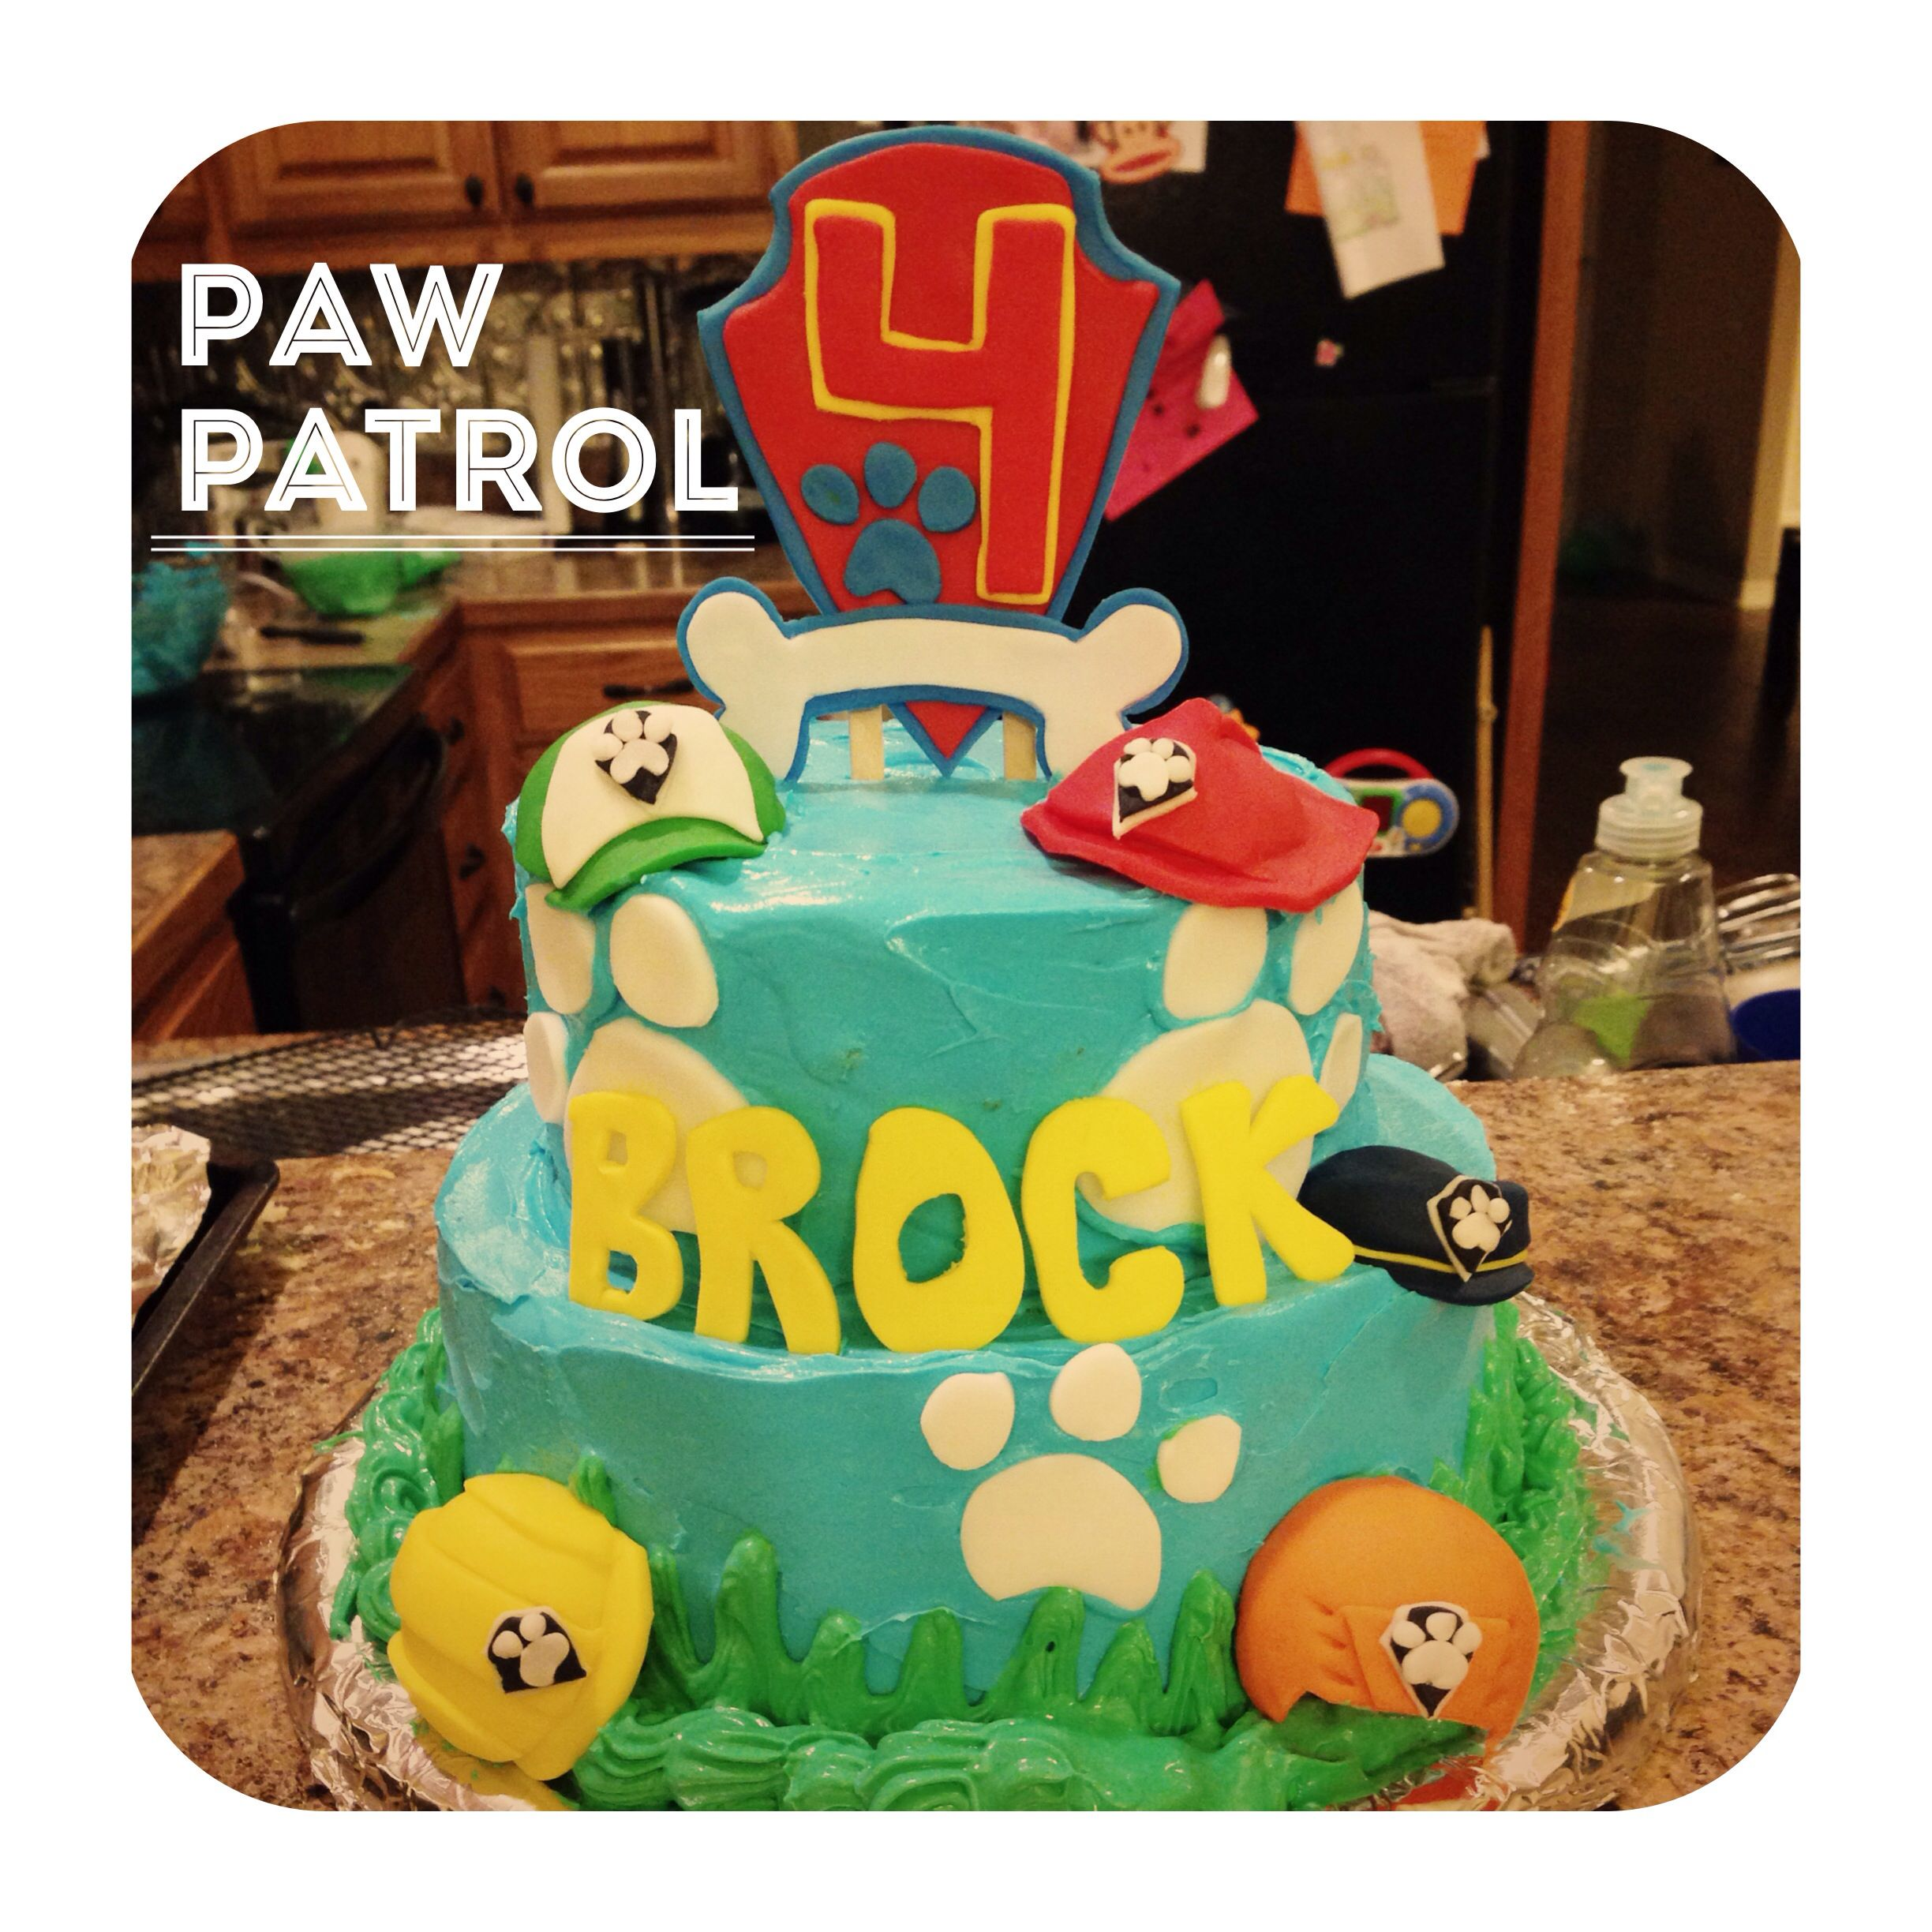 Paw Patrol cake that I made for my nephew Its covered in whipped